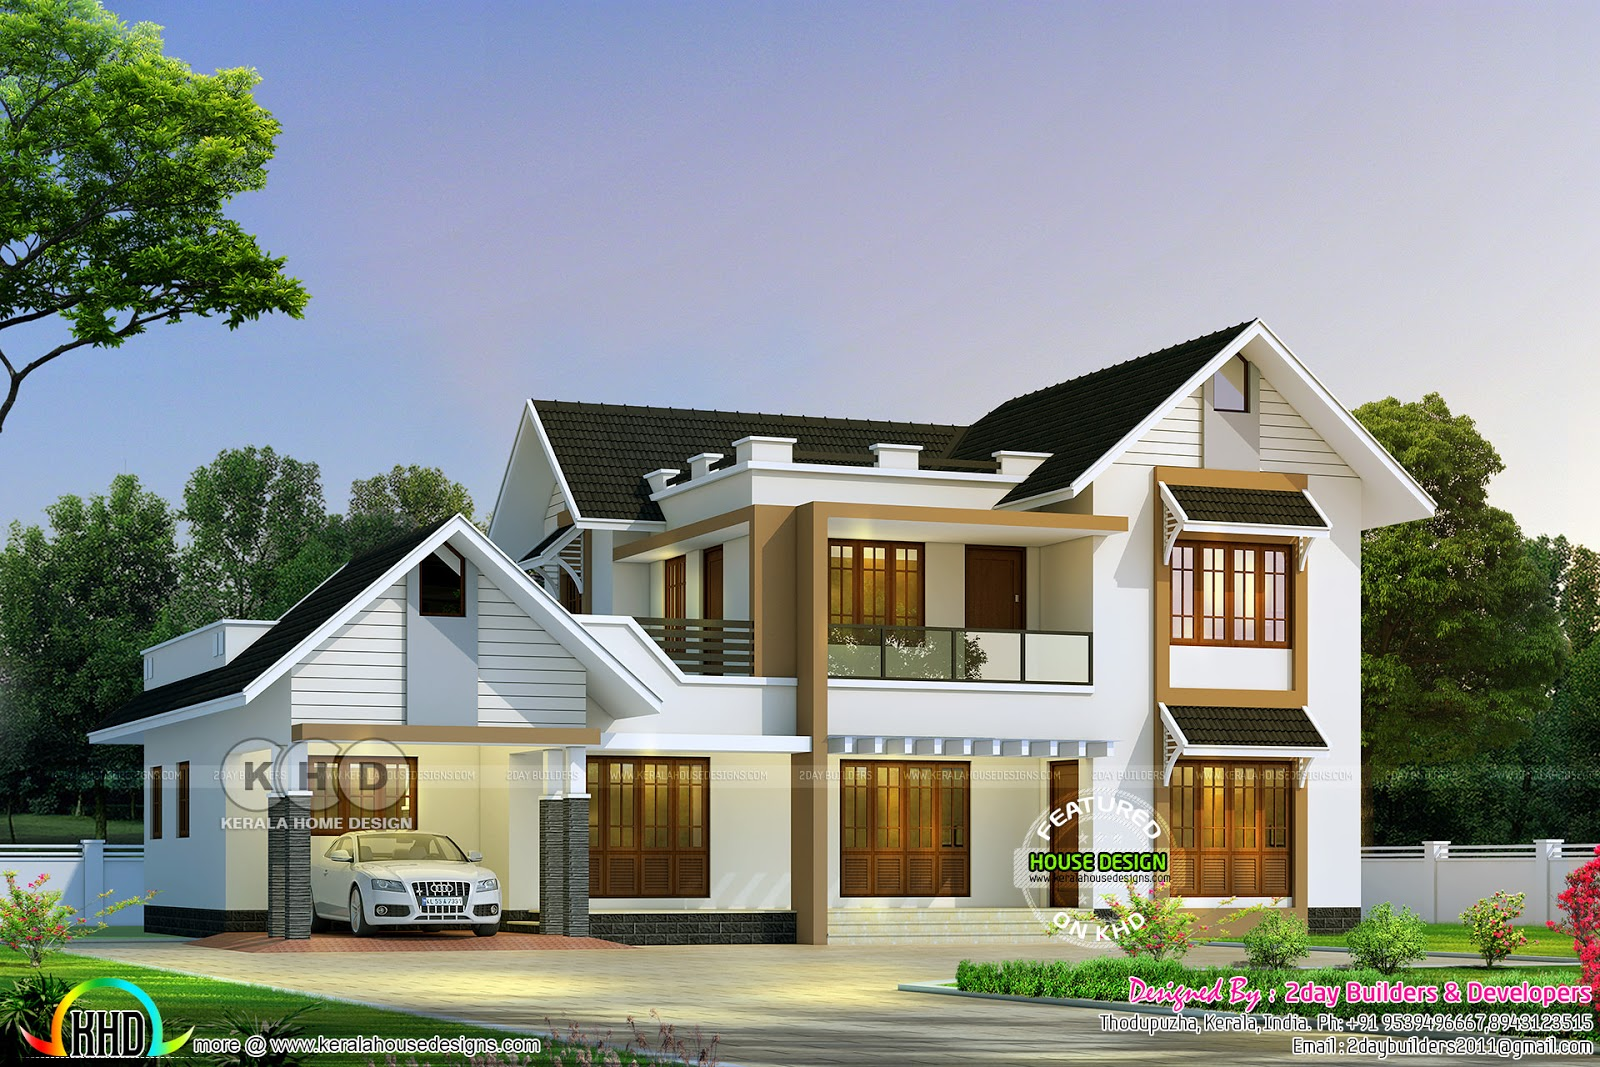 2017 kerala home design and floor plans for Kerala modern house designs